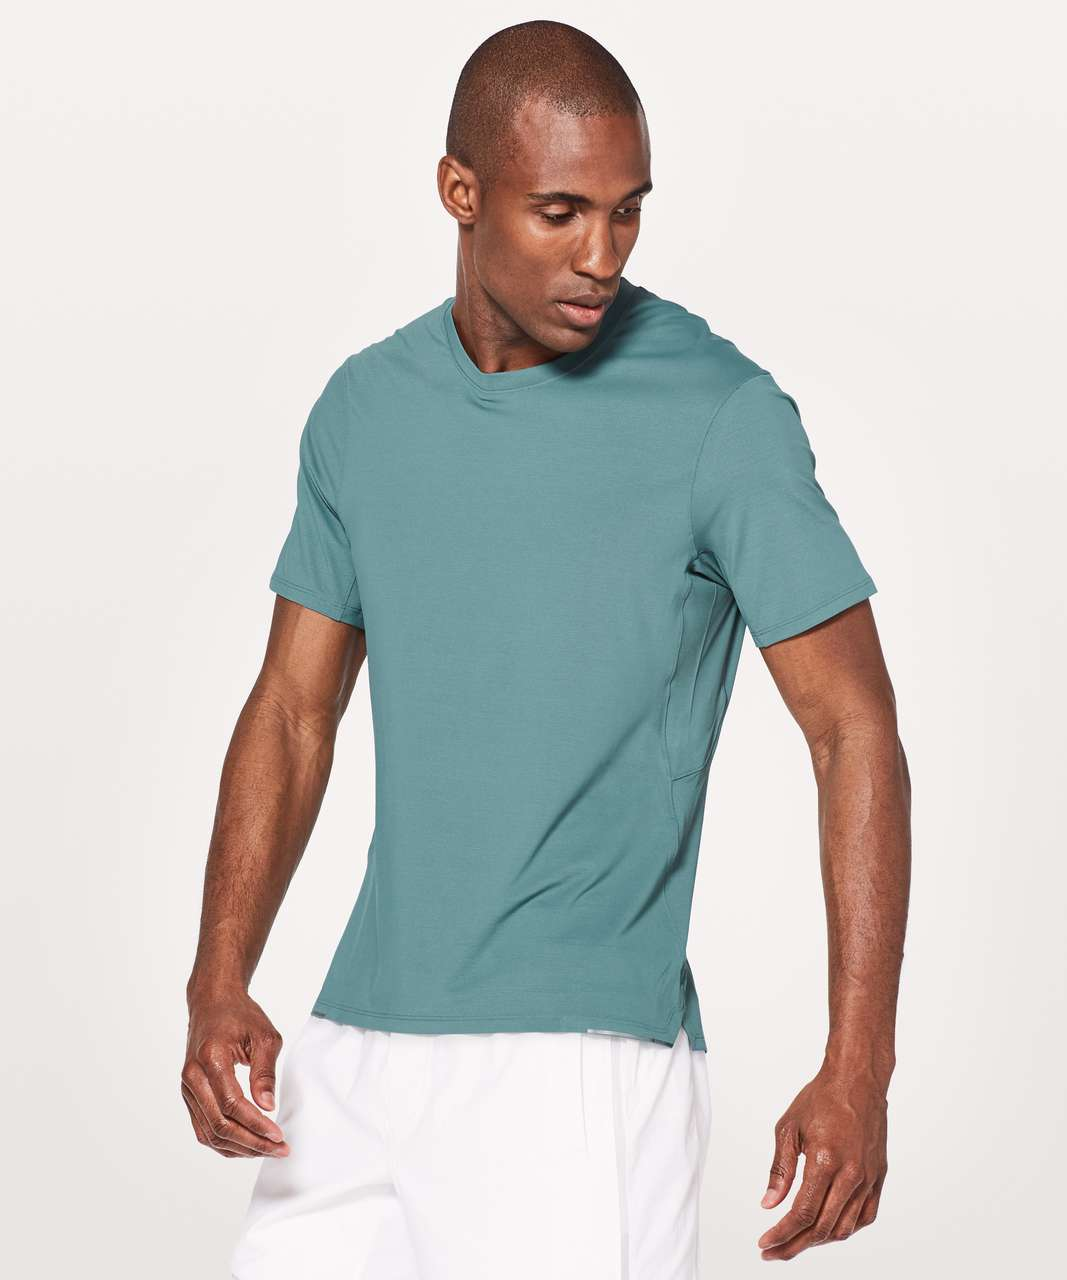 Lululemon Run Out Short Sleeve - Mystic Green